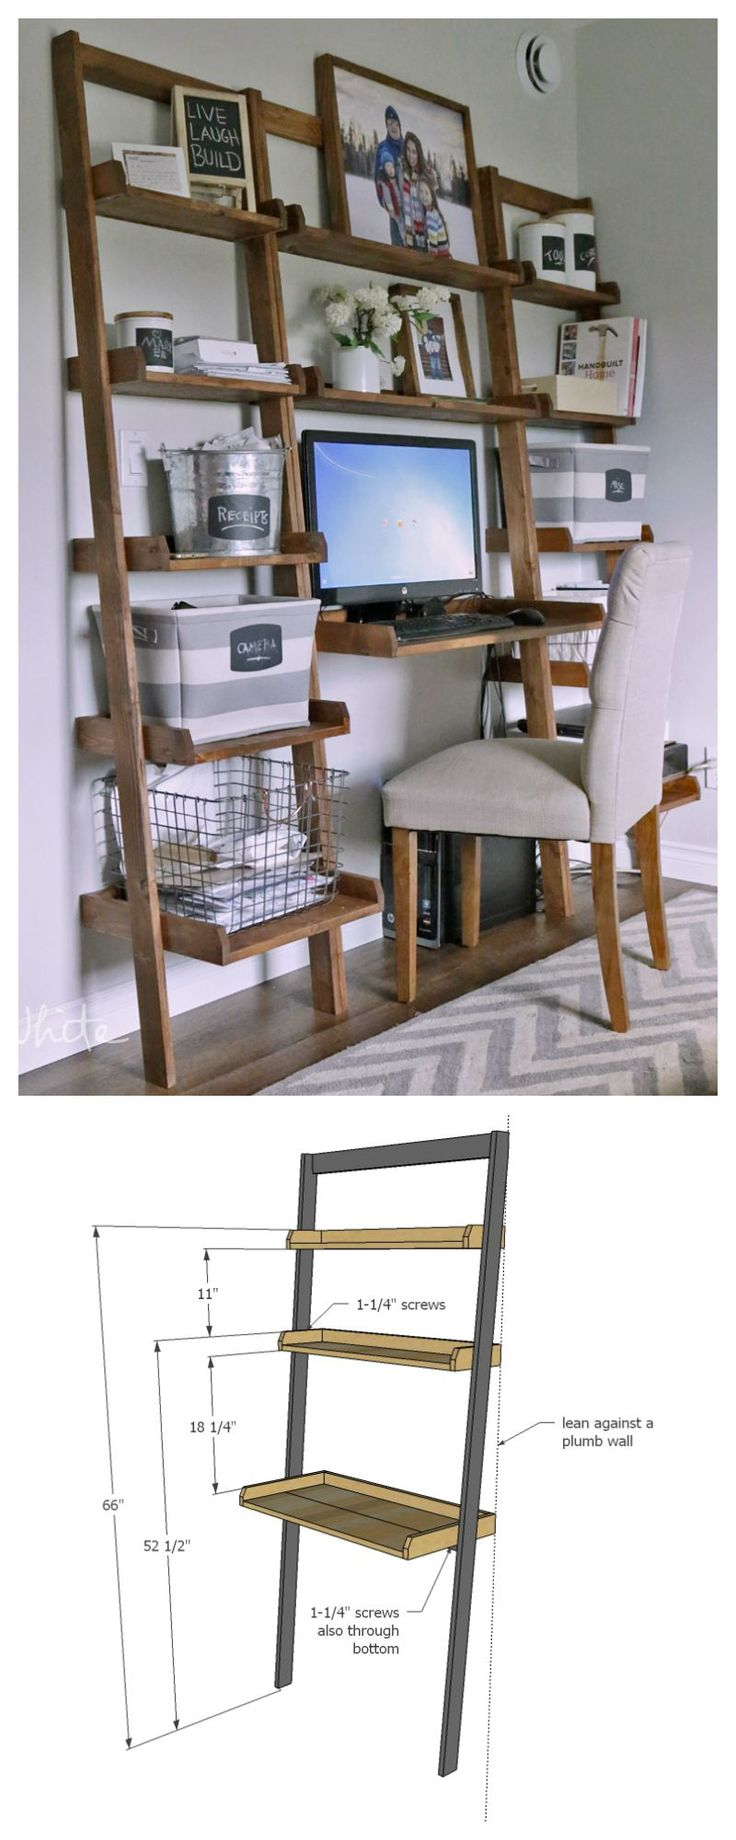 Ana White | Build a Leaning Wall Ladder Desk | Free and Easy DIY Project and Furniture Plans